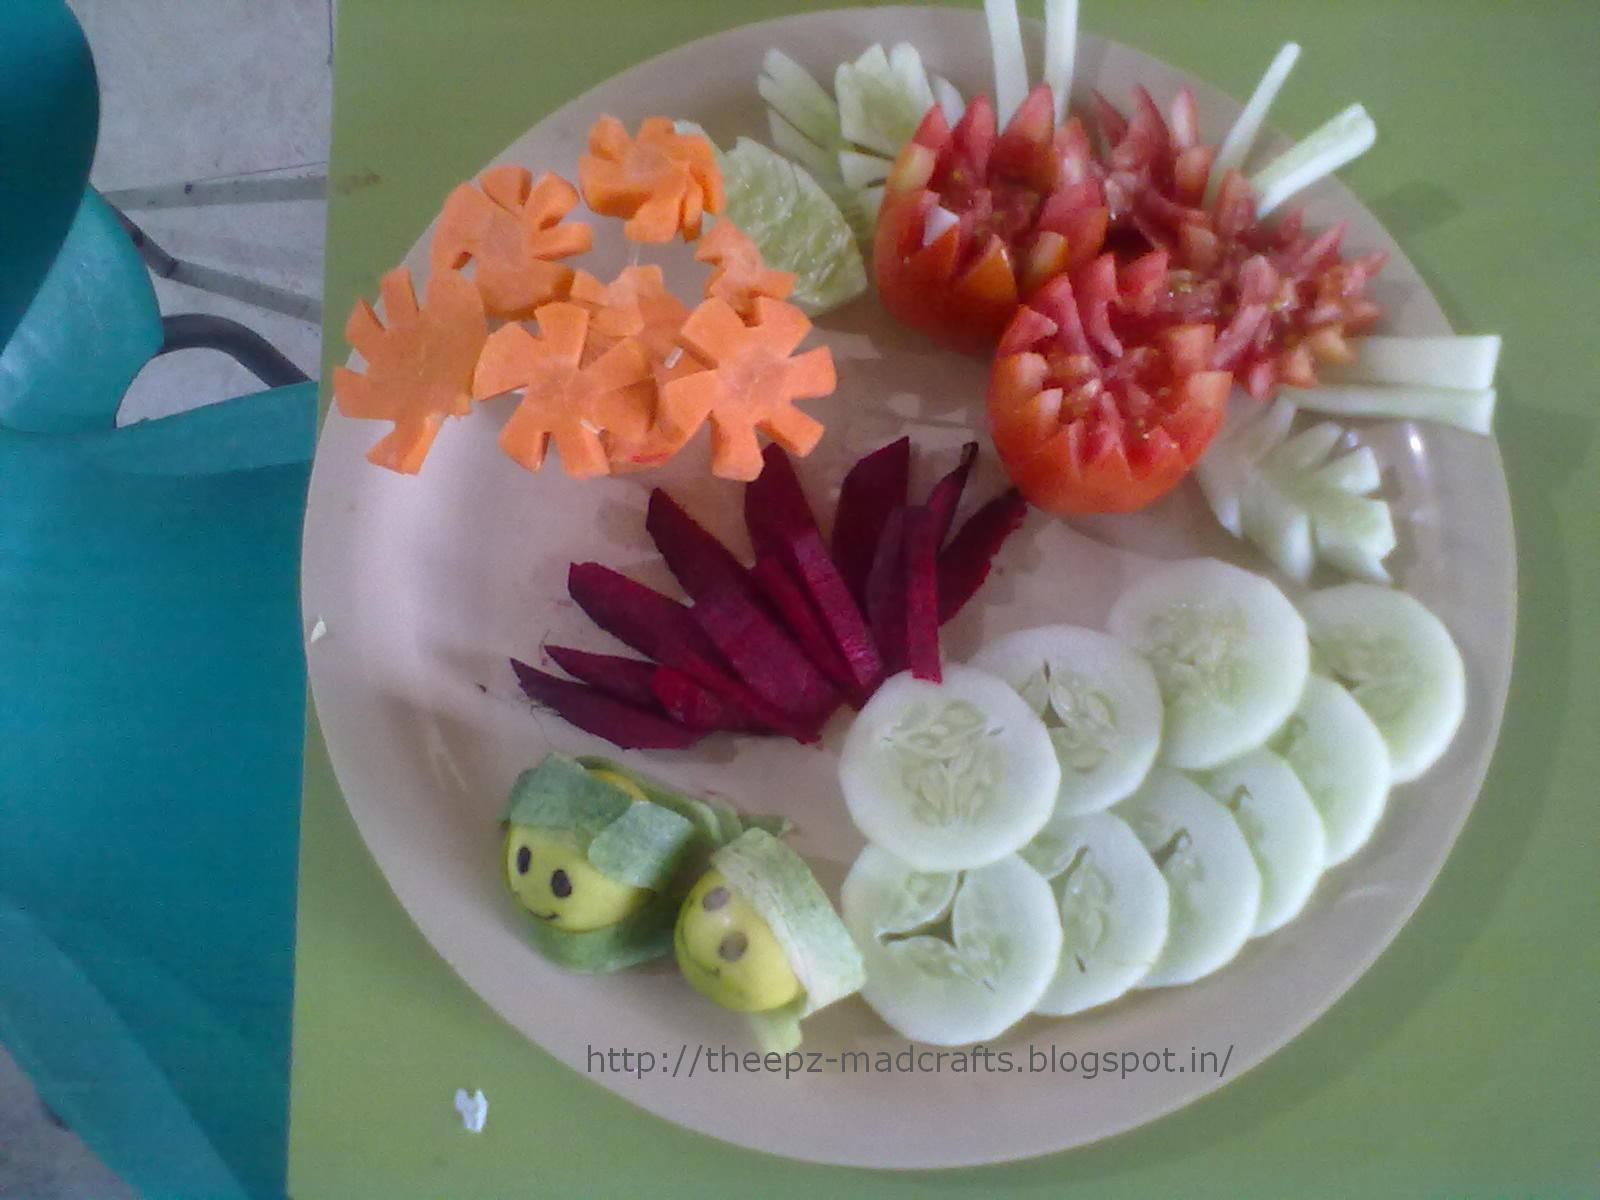 Theepz crafts simple vegetable carvings